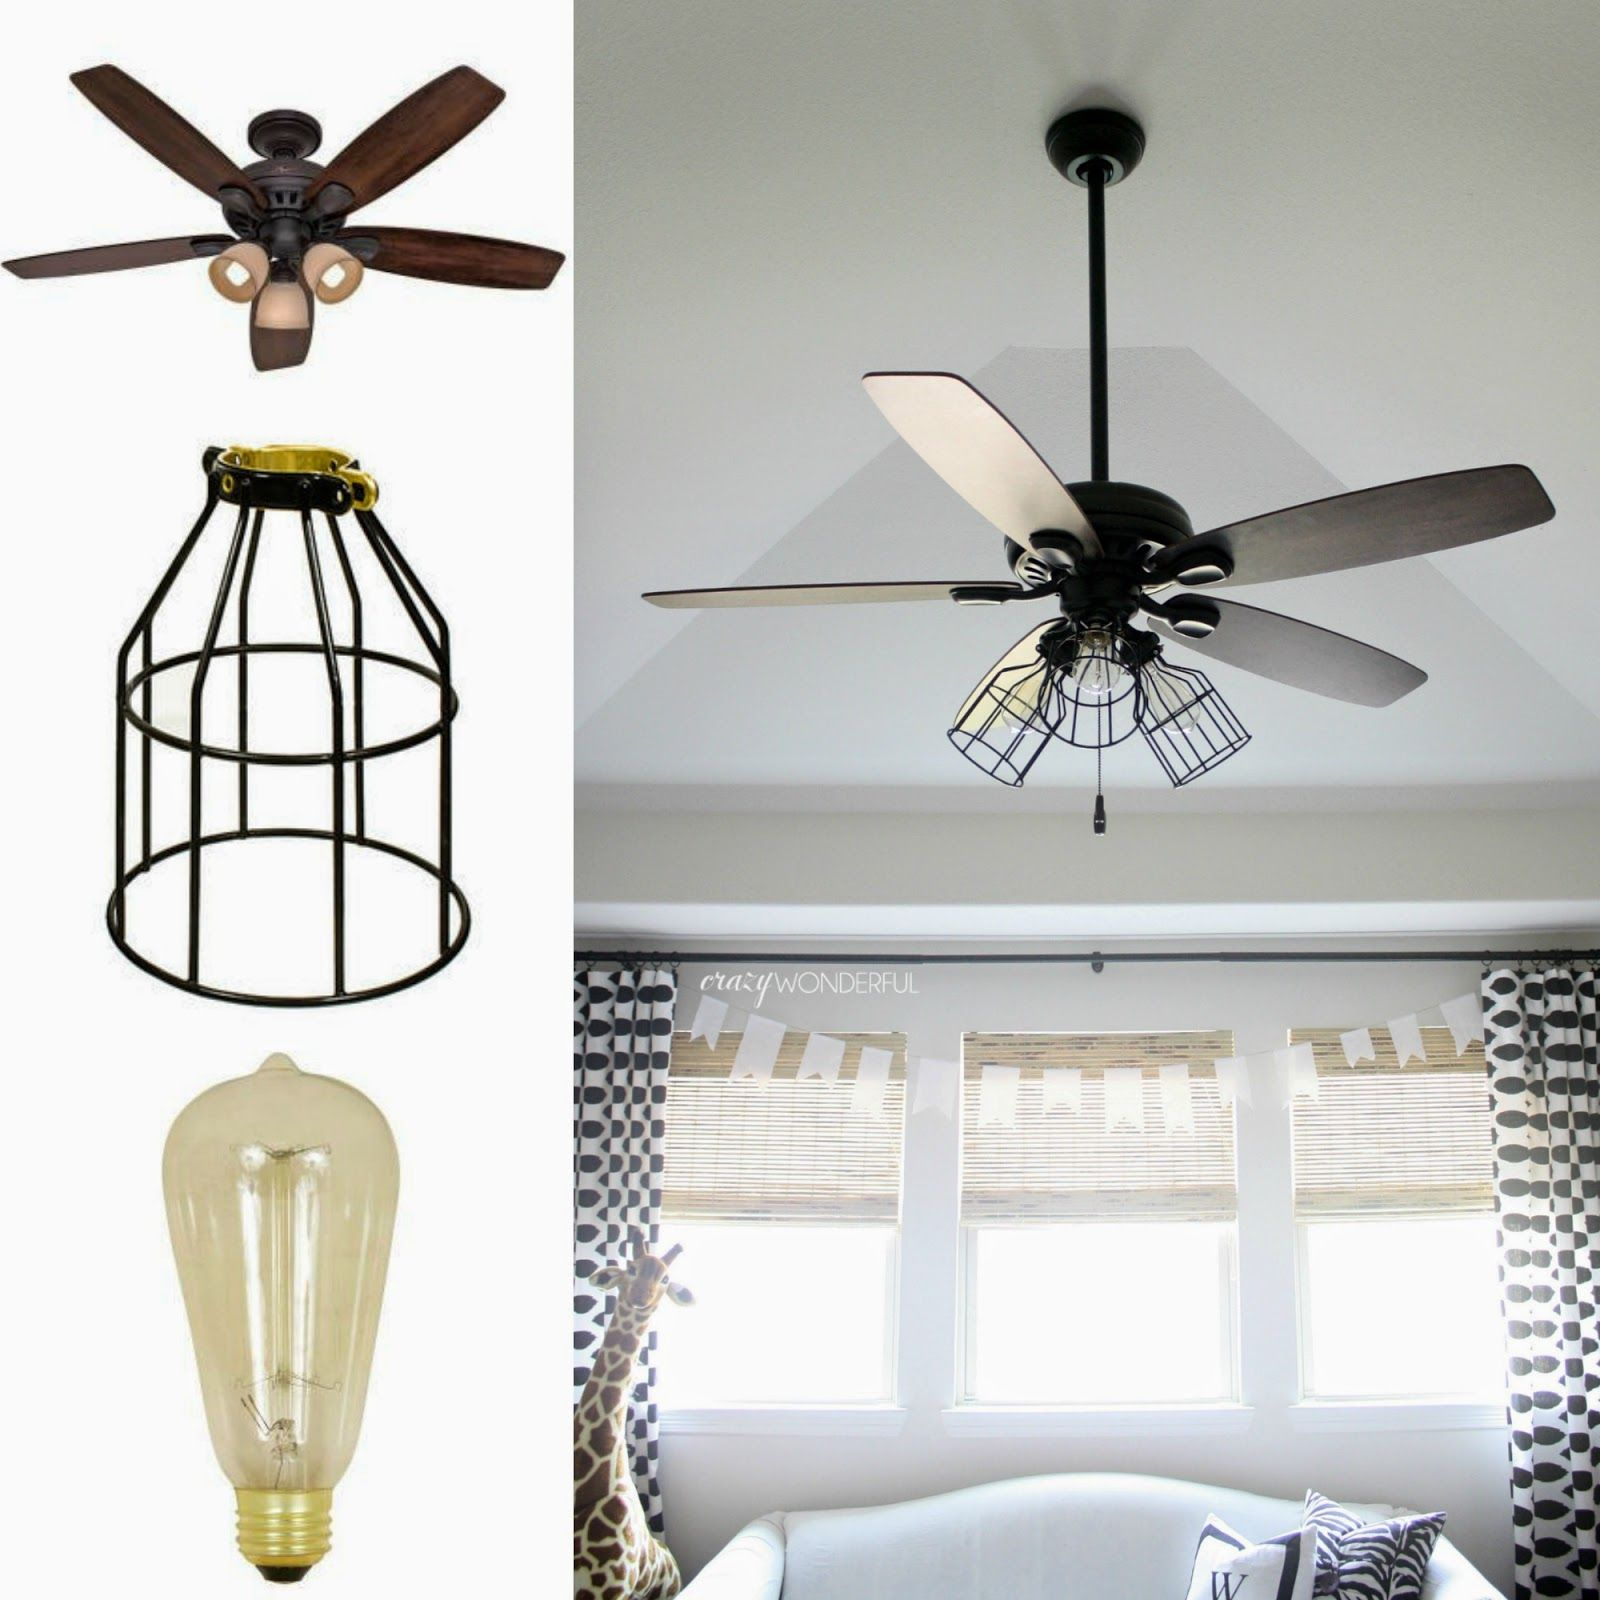 Crazy wonderful diy cage light ceiling fan ceiling fans crazy wonderful diy cage light ceiling fan aloadofball Choice Image